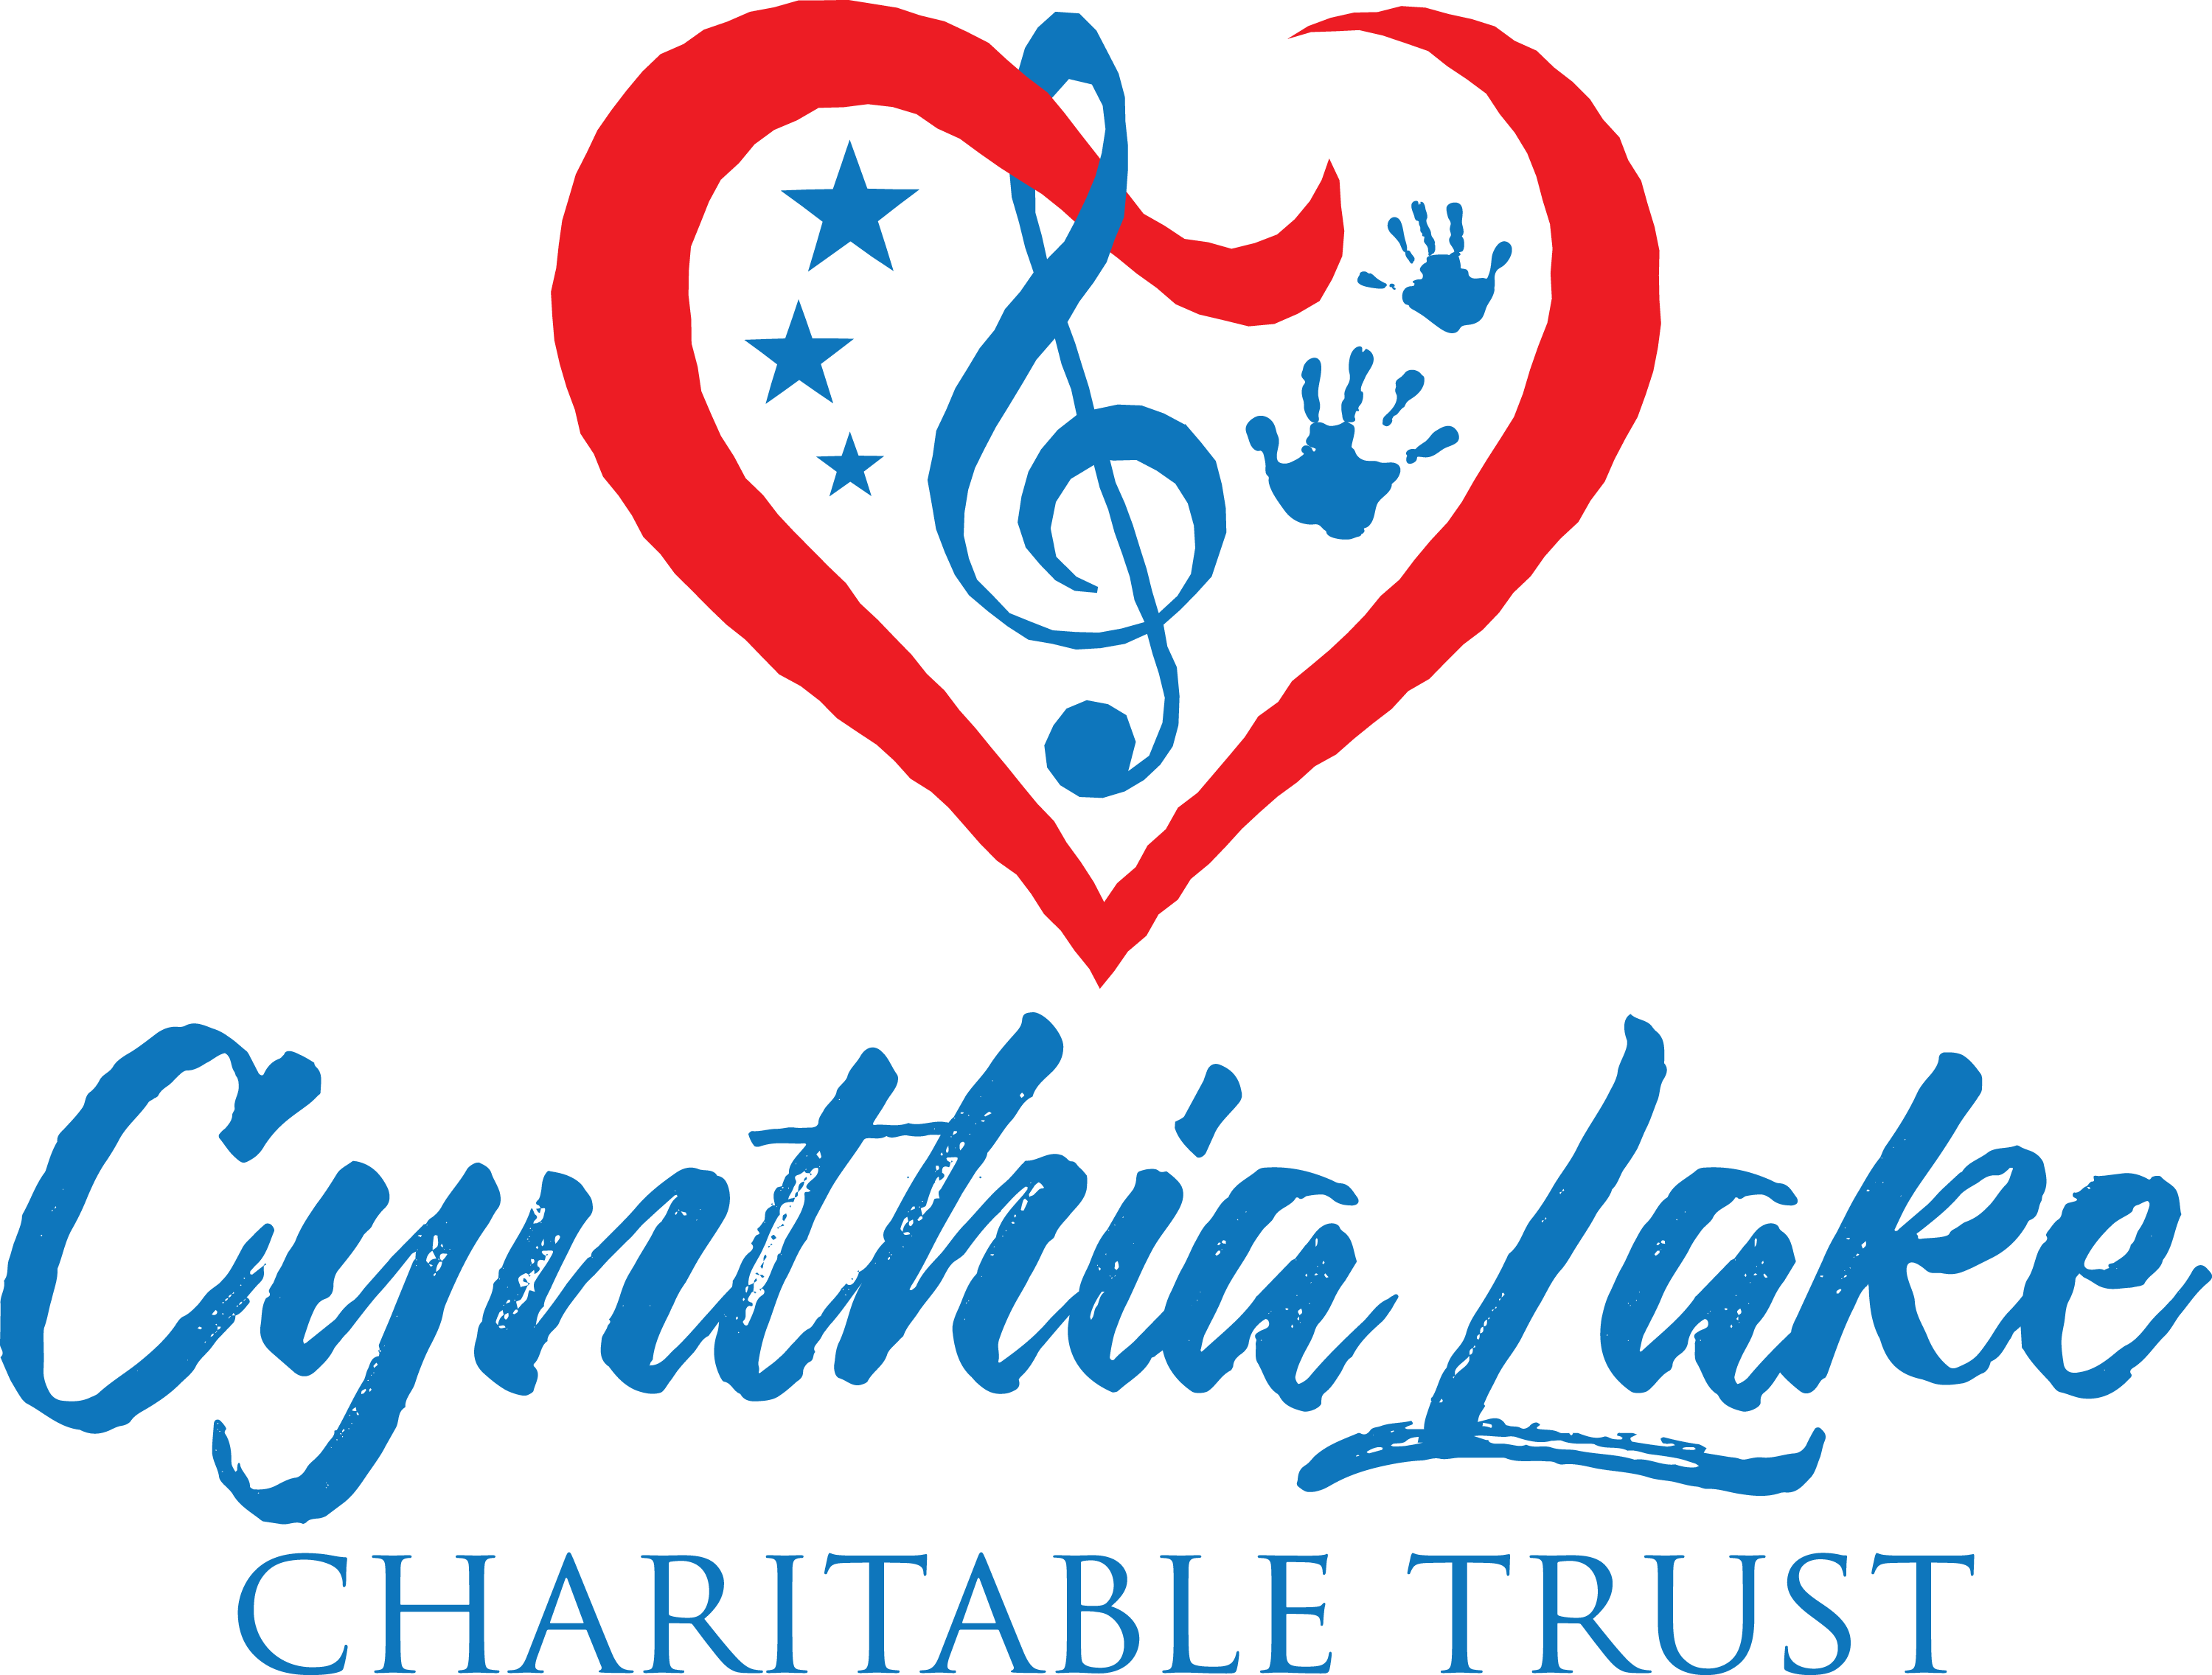 Cynthia Lake Charitable Trust